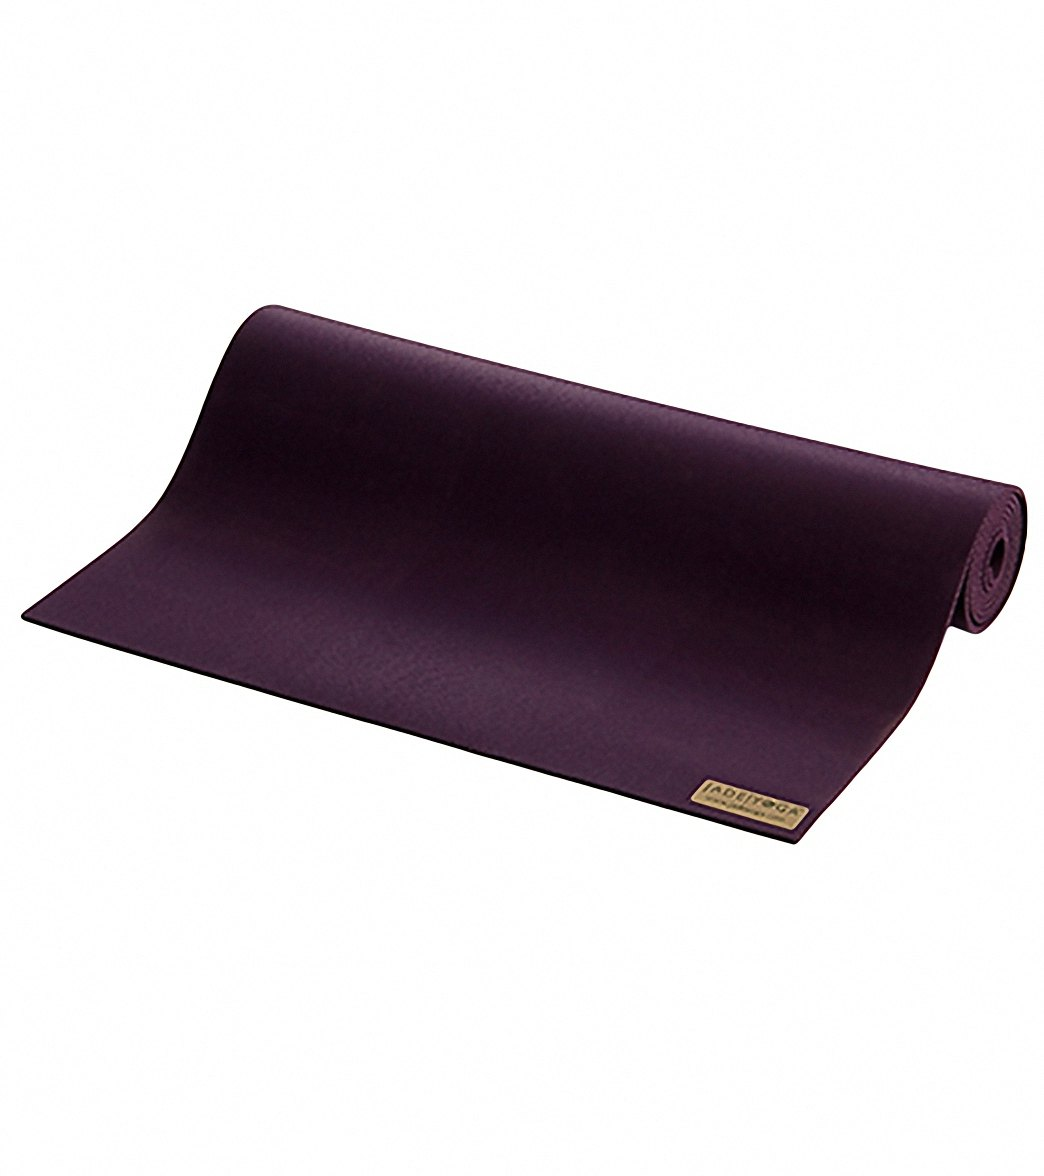 Jade Yoga Harmony Natural Rubber Yoga Mat 74 5mm Yoga Mat At Yogaoutlet Com At Yogaoutlet Com